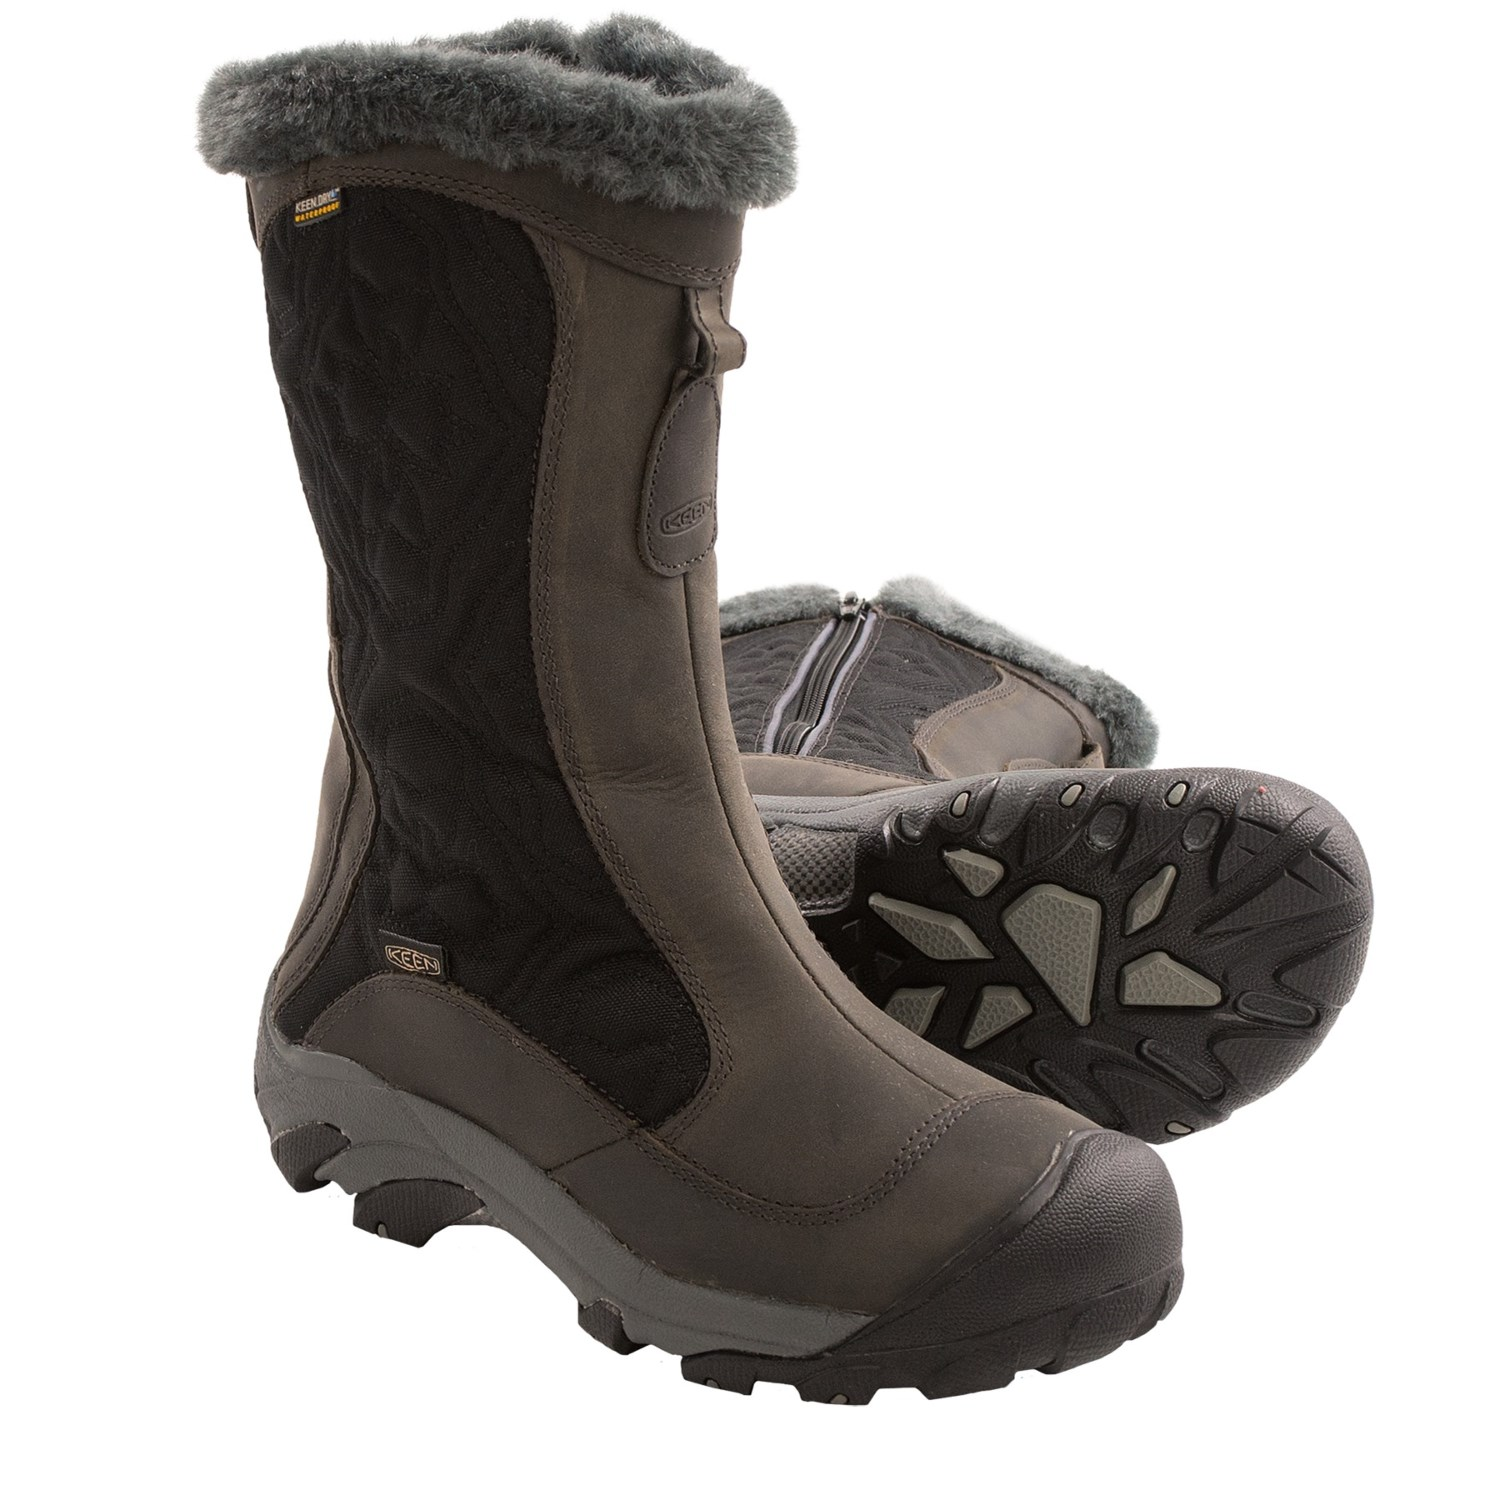 Keen Betty Ii Snow Boots Waterproof Insulated For